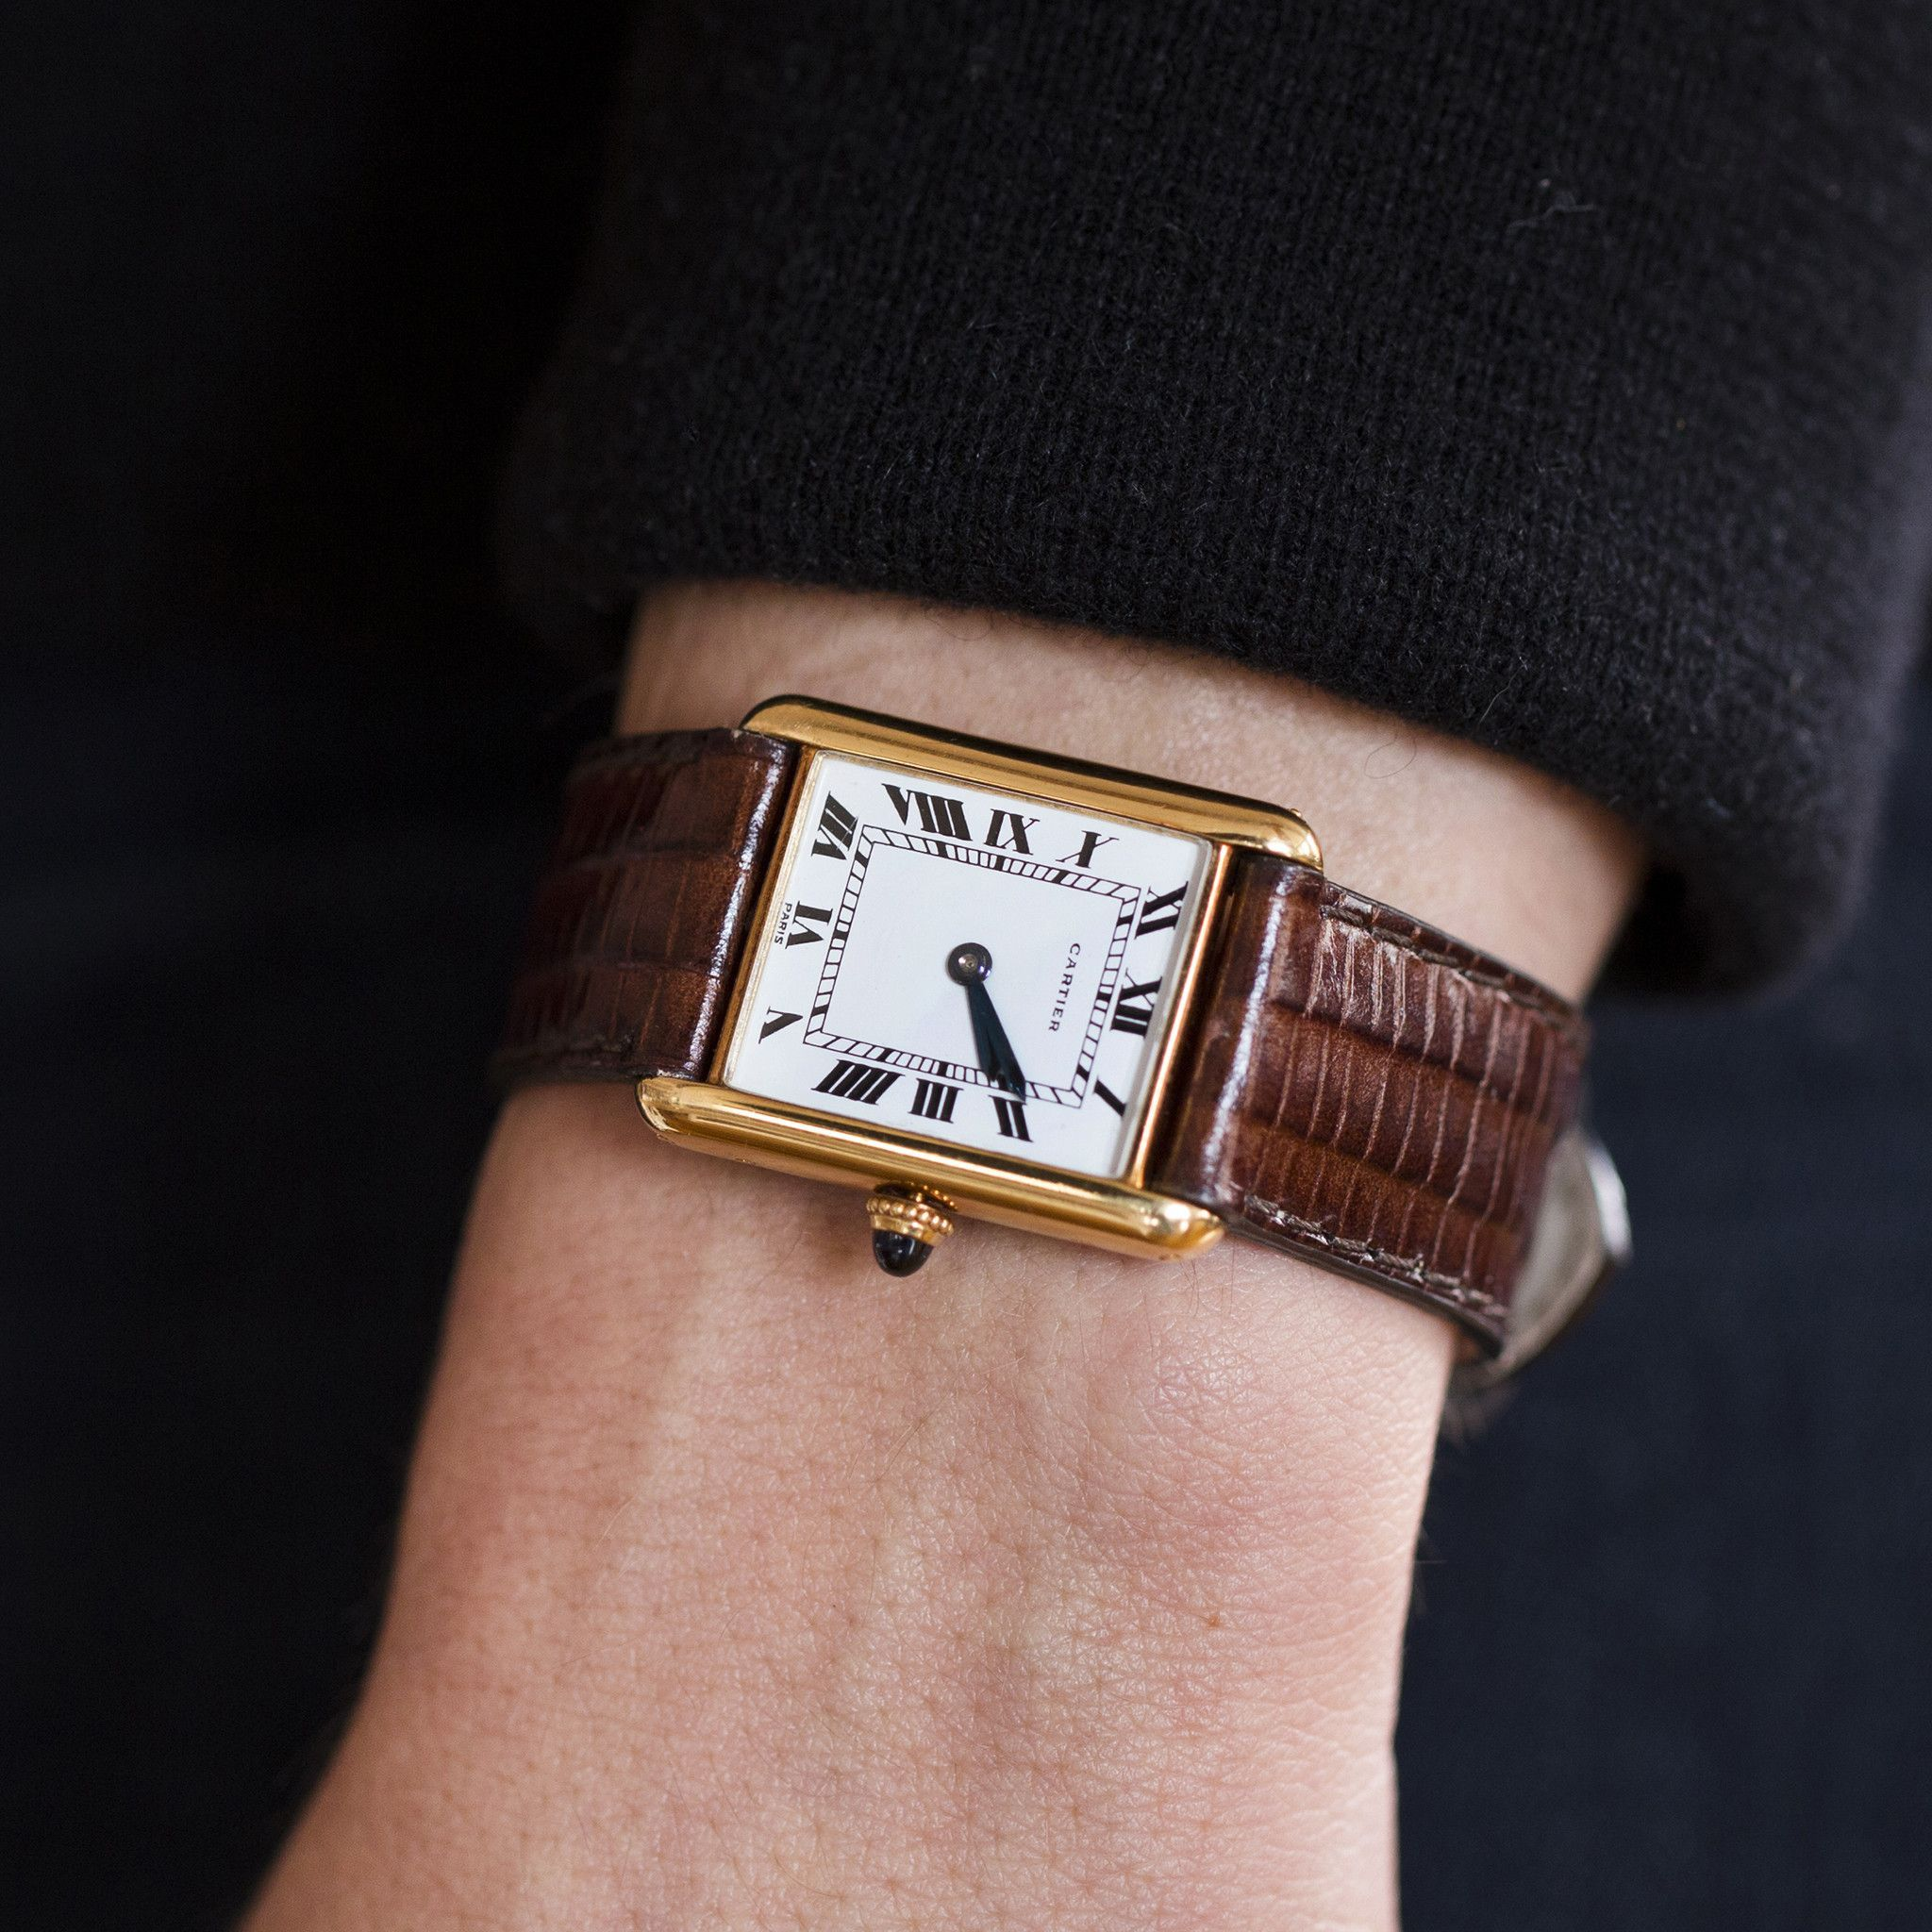 1972 Cartier Tank With Audemars Piguet Movement Cartier Watches Women Cartier Tank Cartier Watch